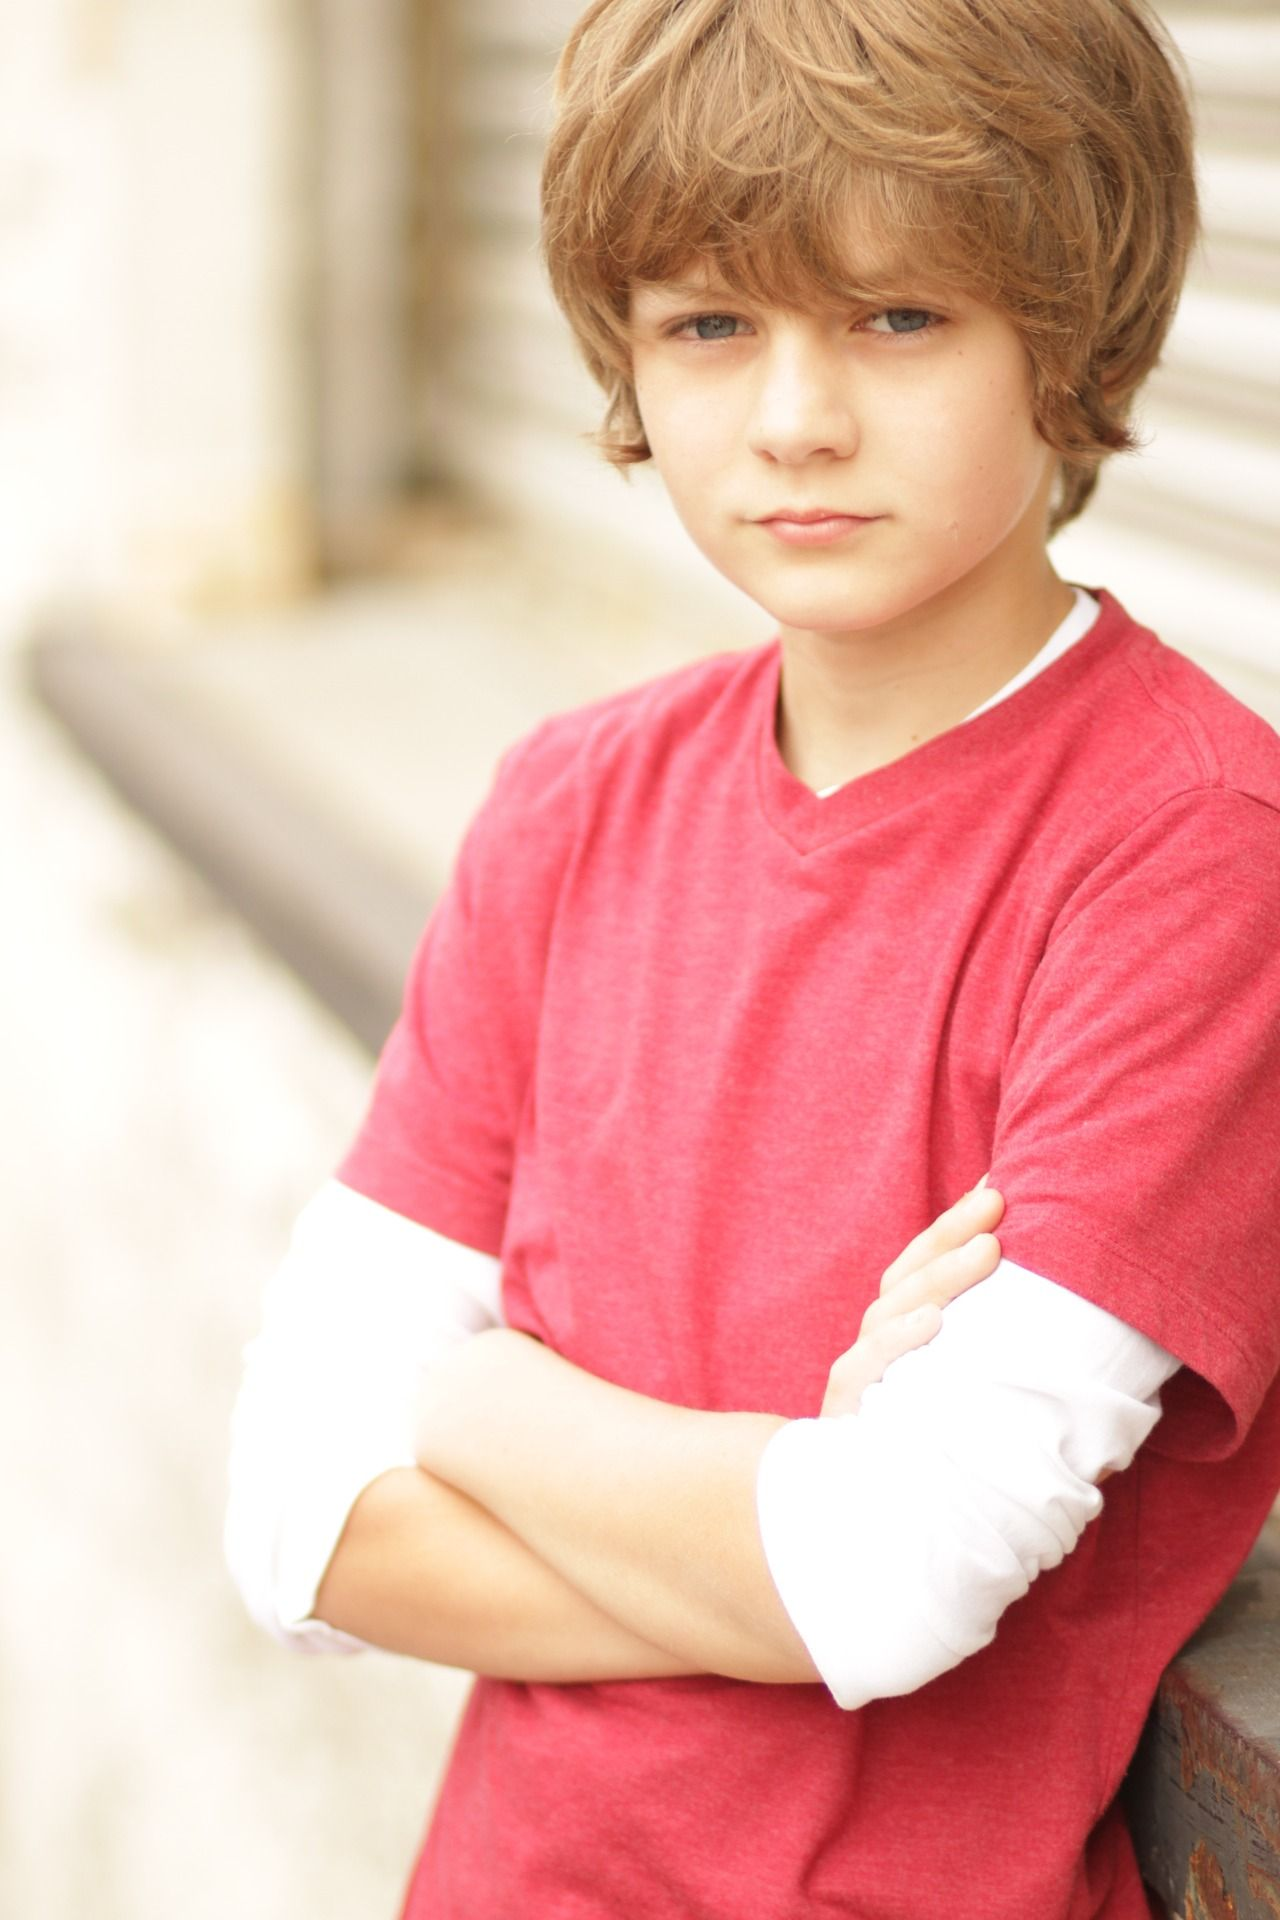 ty simpkins heightty simpkins instagram, ty simpkins 2017, ty simpkins gif, ty simpkins barefoot, ty simpkins and sara david, ty simpkins model, ty simpkins getty images, ty simpkins woman, ty simpkins facebook, ty simpkins family, ty simpkins imdb, ty simpkins host, ty simpkins the fumble, ty simpkins height